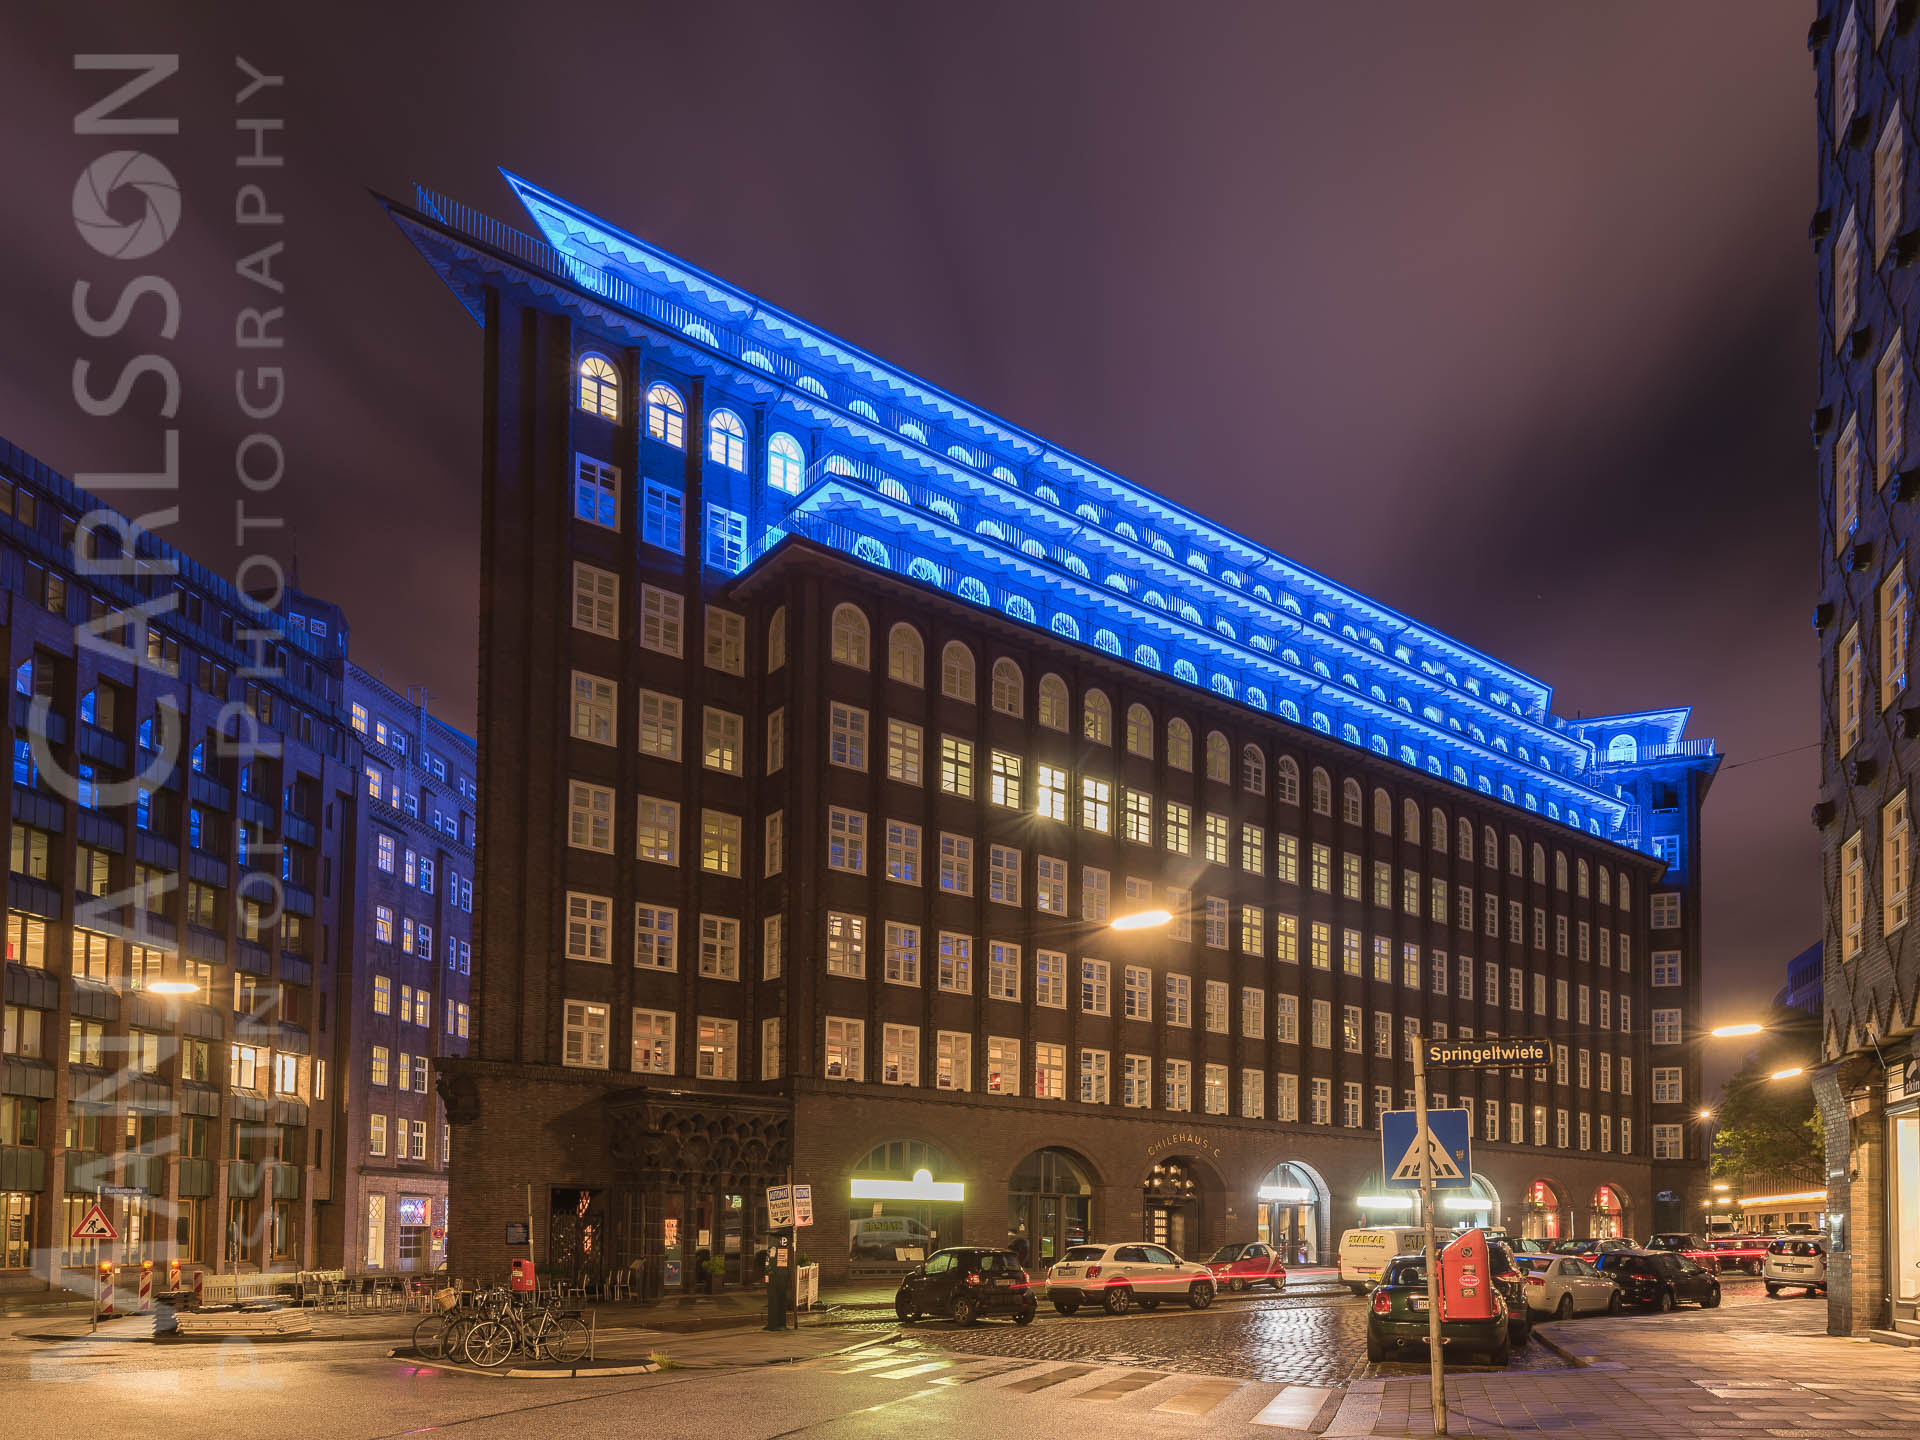 Chilehaus (Kontorhaus in Hamburg) - Blue Port 2017